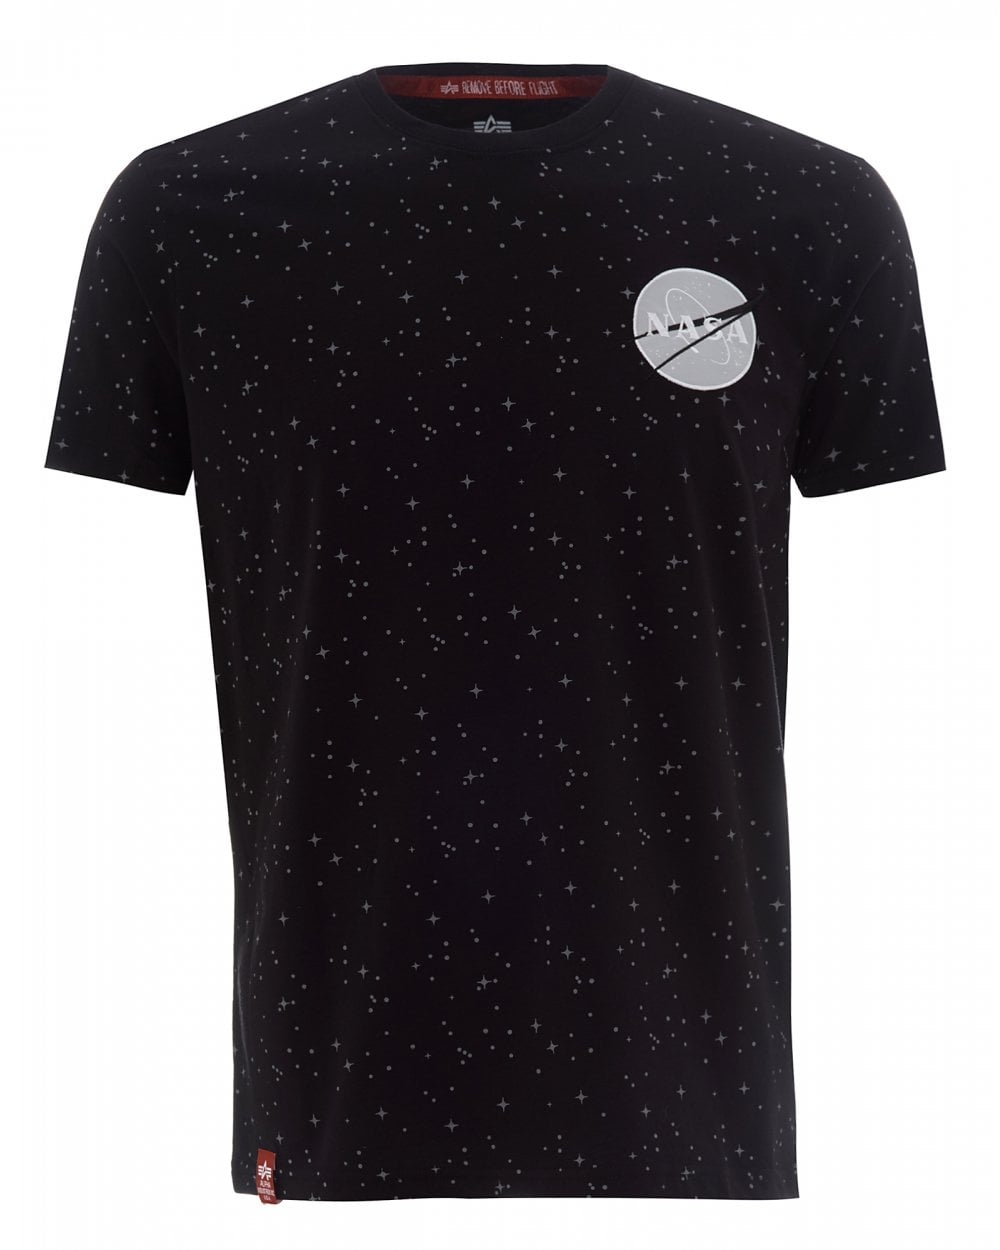 check out 2eed4 27011 Mens Black NASA T-Shirt, Starry Tape Tee